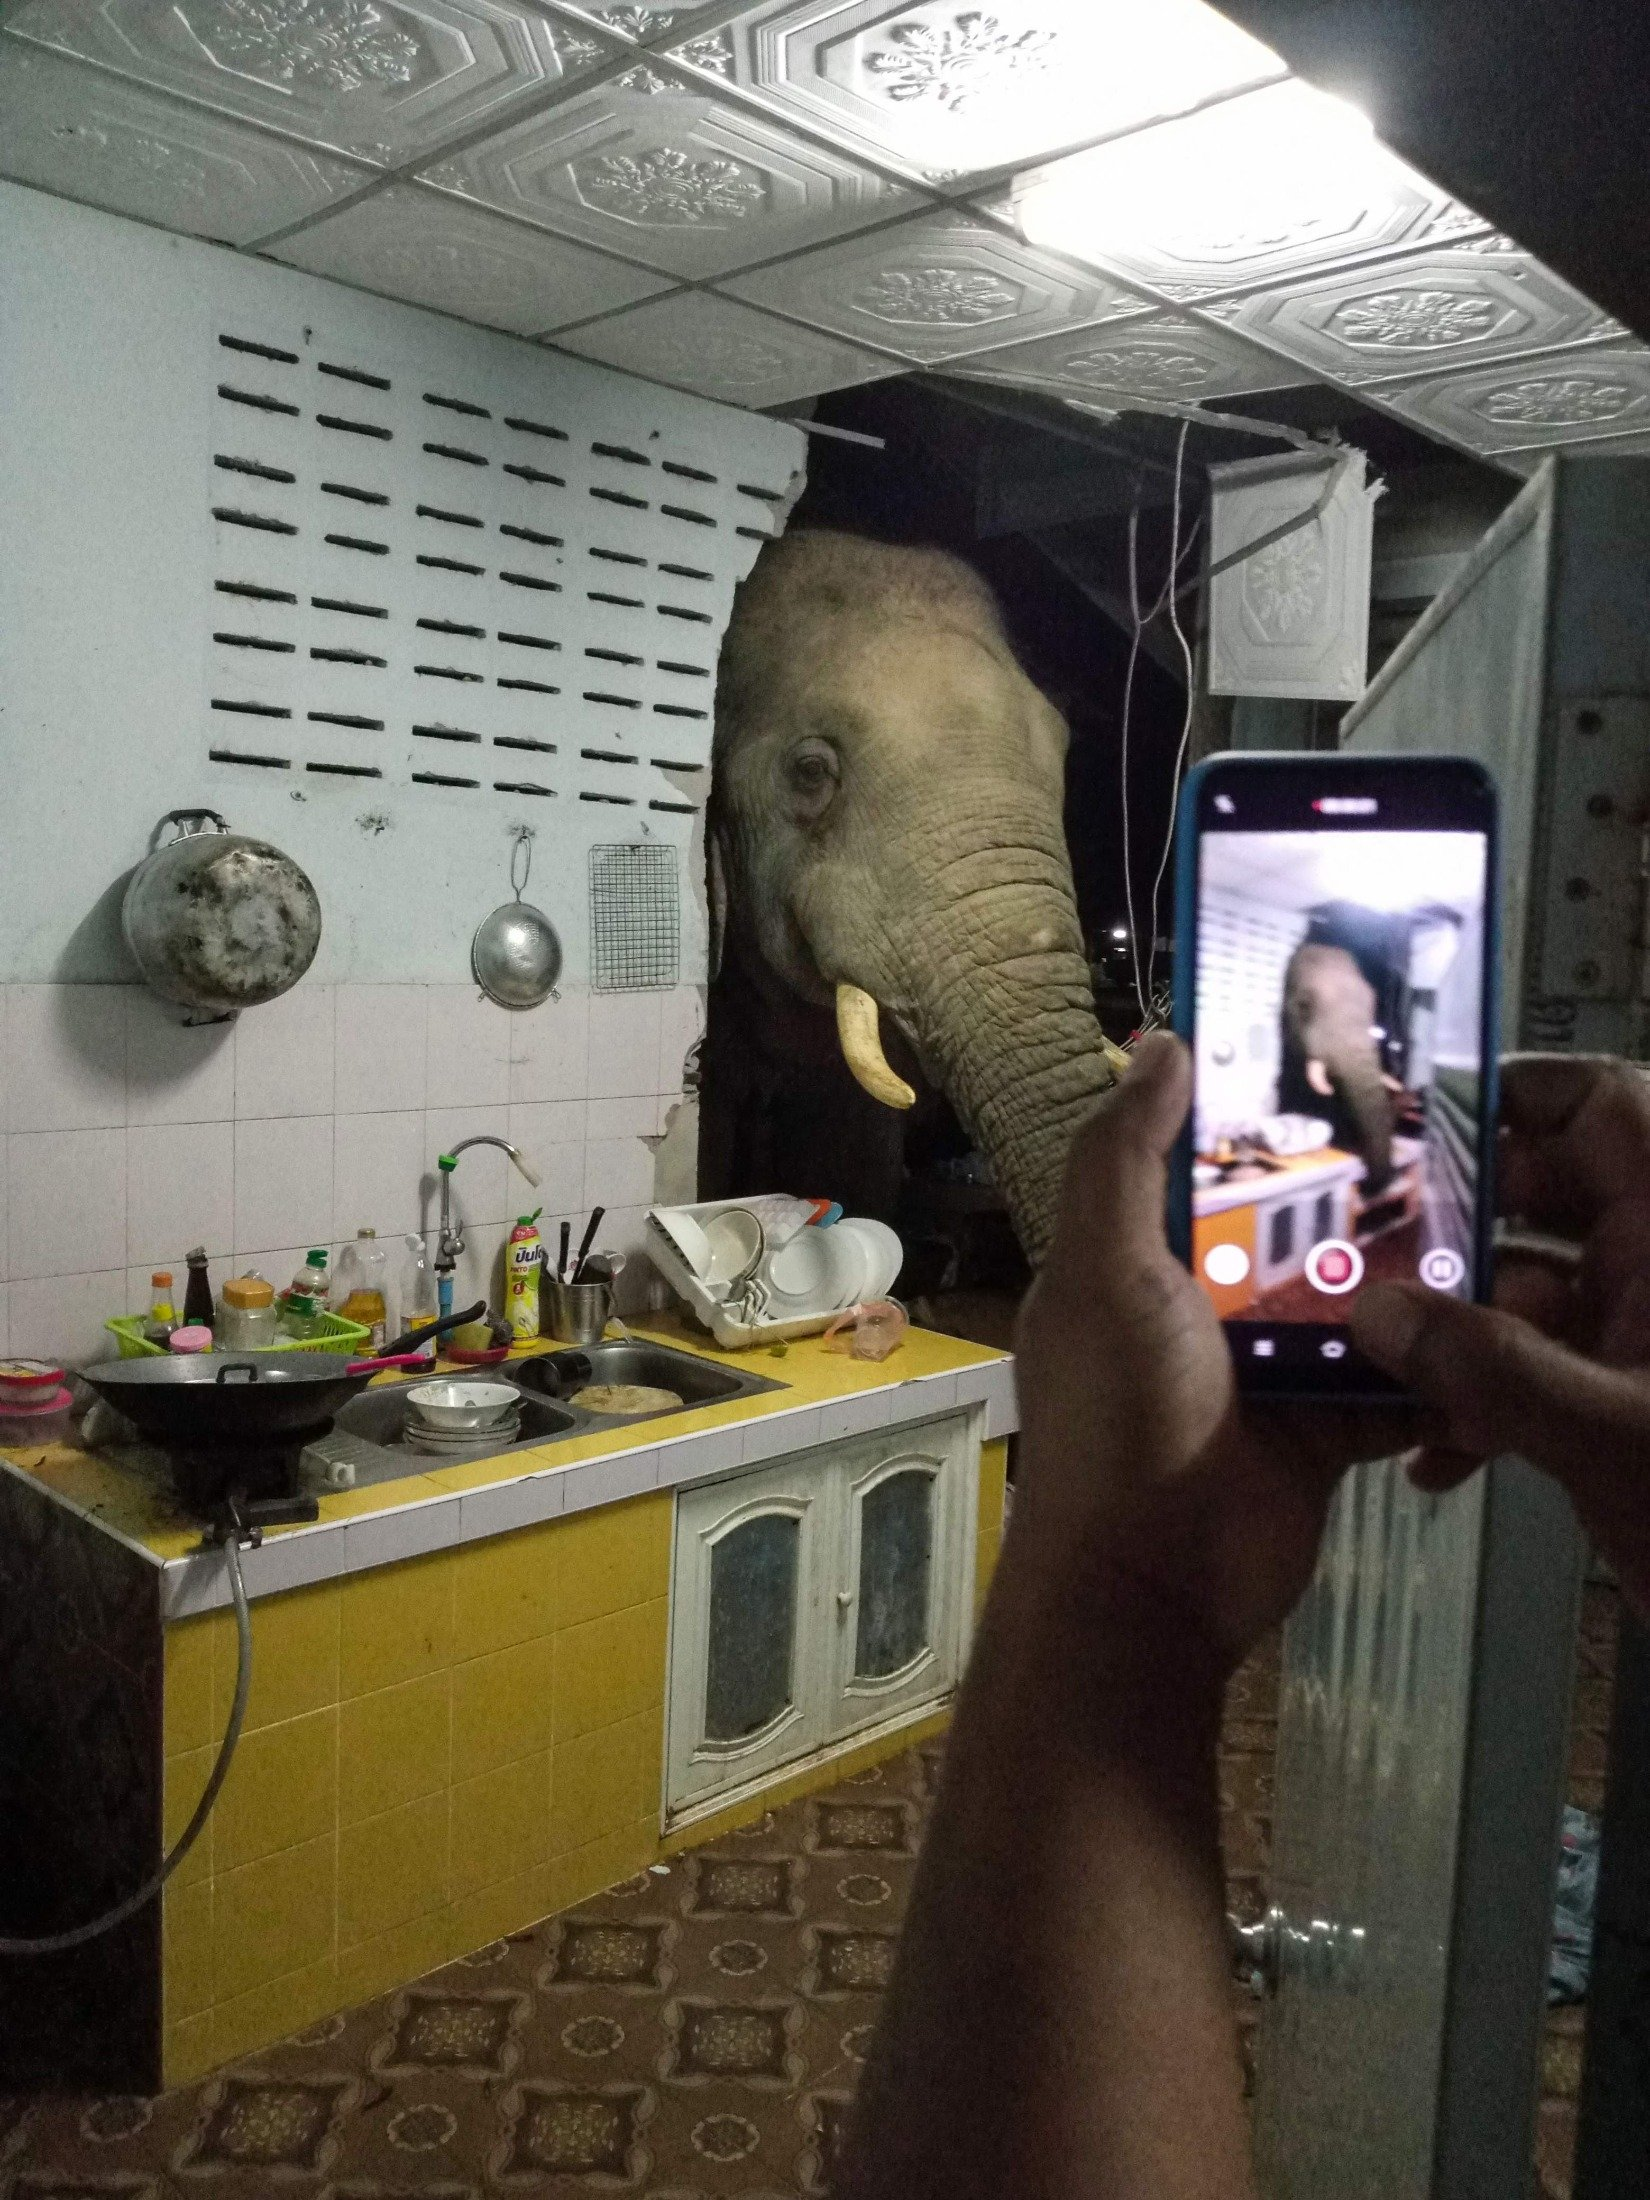 Kittichai Boodchan uses his mobile phone to film a video as an elephant searches for food in the kitchen of their home in Pa La-U, Hua Hin, Thailand, June 20, 2021. (Radchadawan Peungprasopporn via AFP)